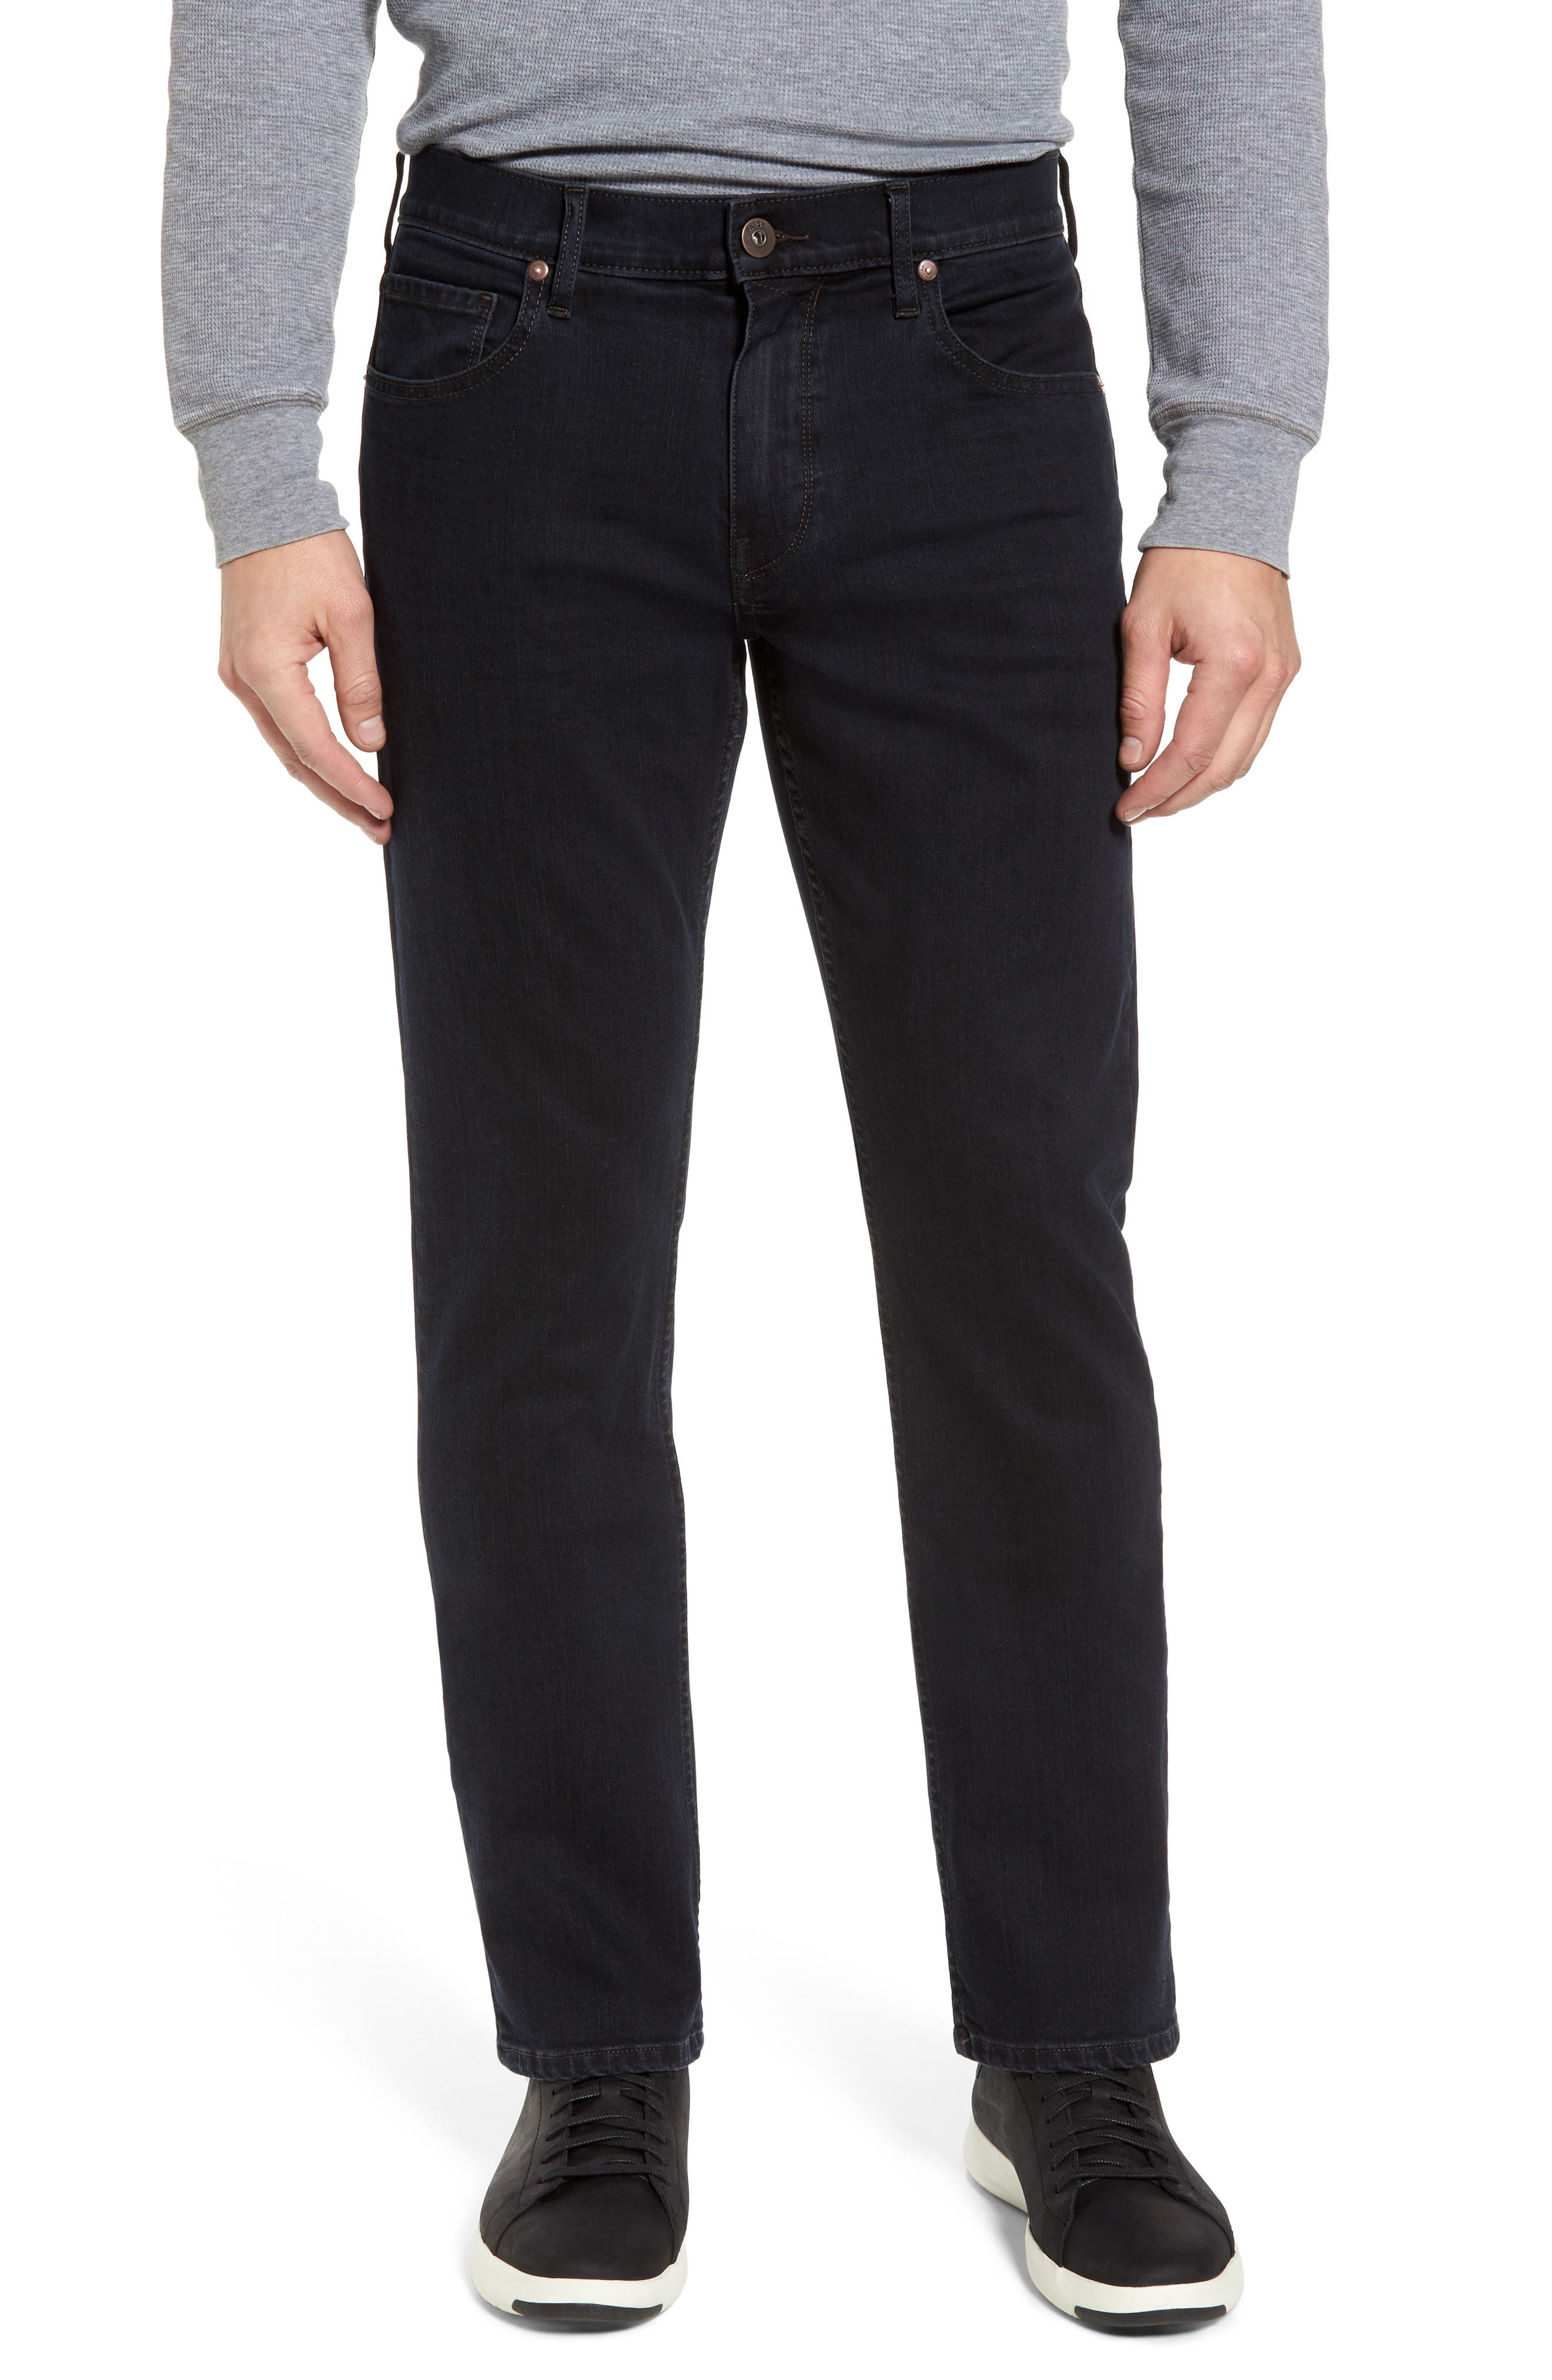 Normandie Straight Leg Jeans,                         Main,                         color, Tommy